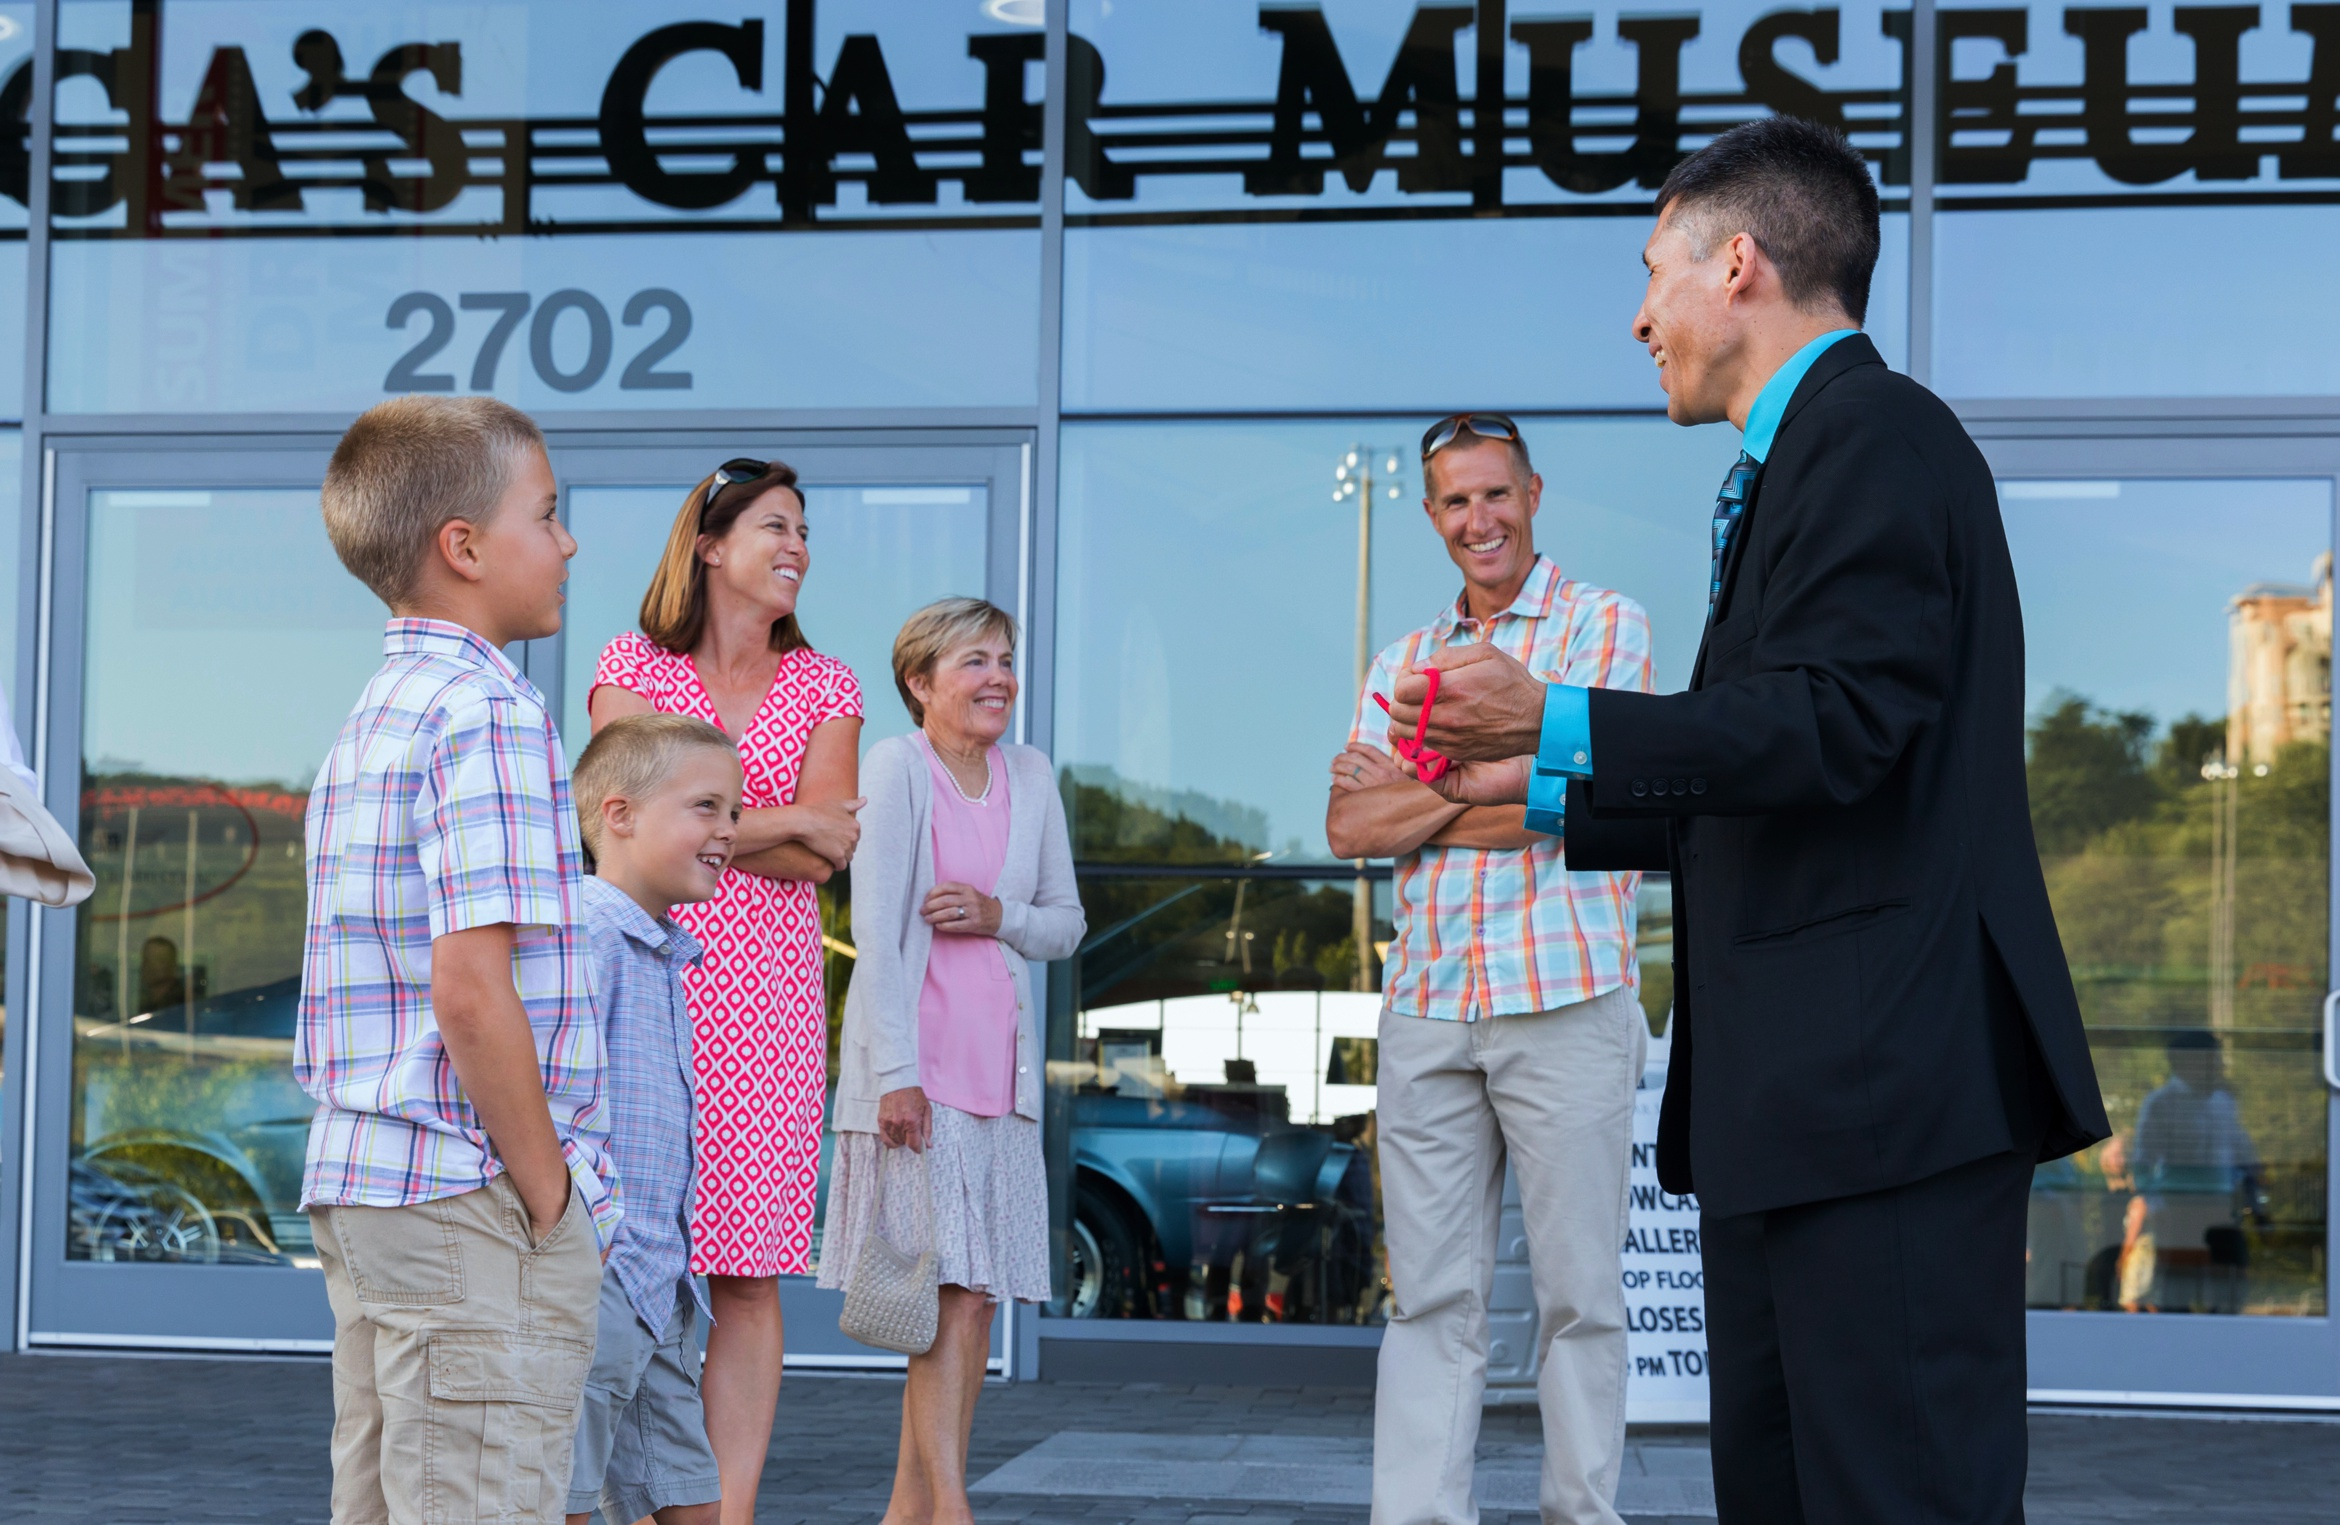 Magician Jeff Evans at the LeMay-America's Car Museum